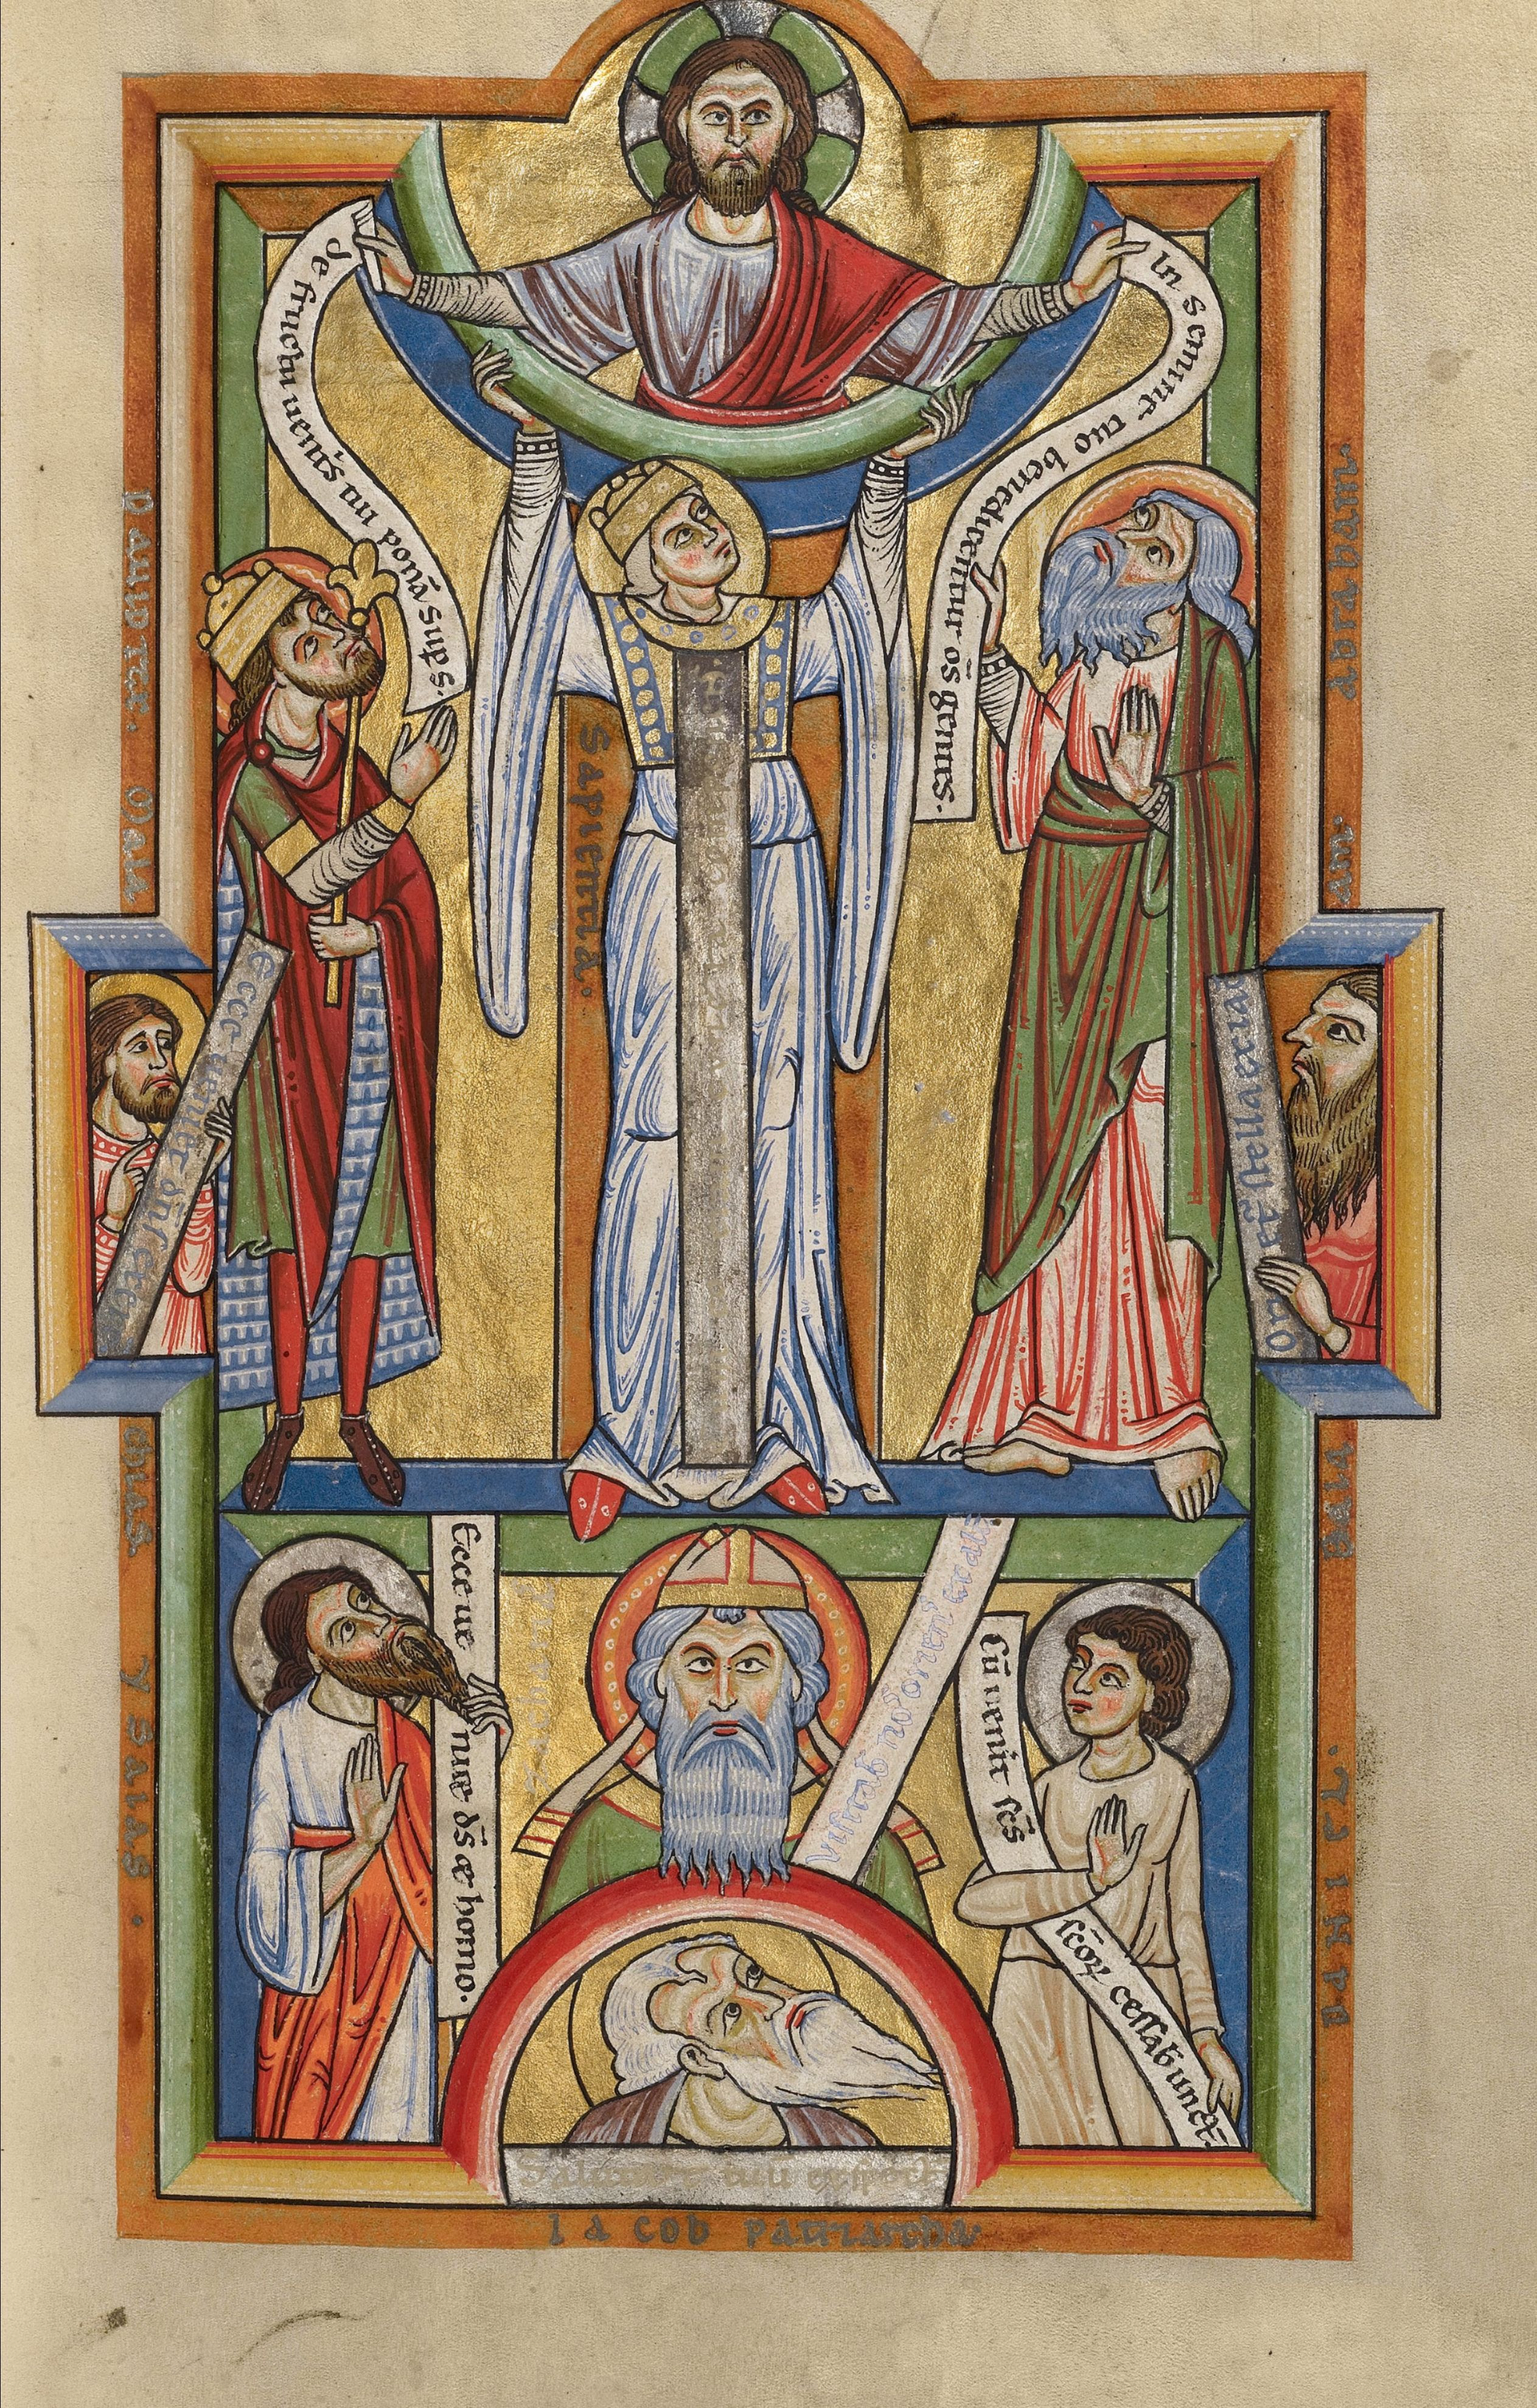 A 12th century manuscript illustration of Lady Wisdom, looking up towards Christ, surrounded by prophets